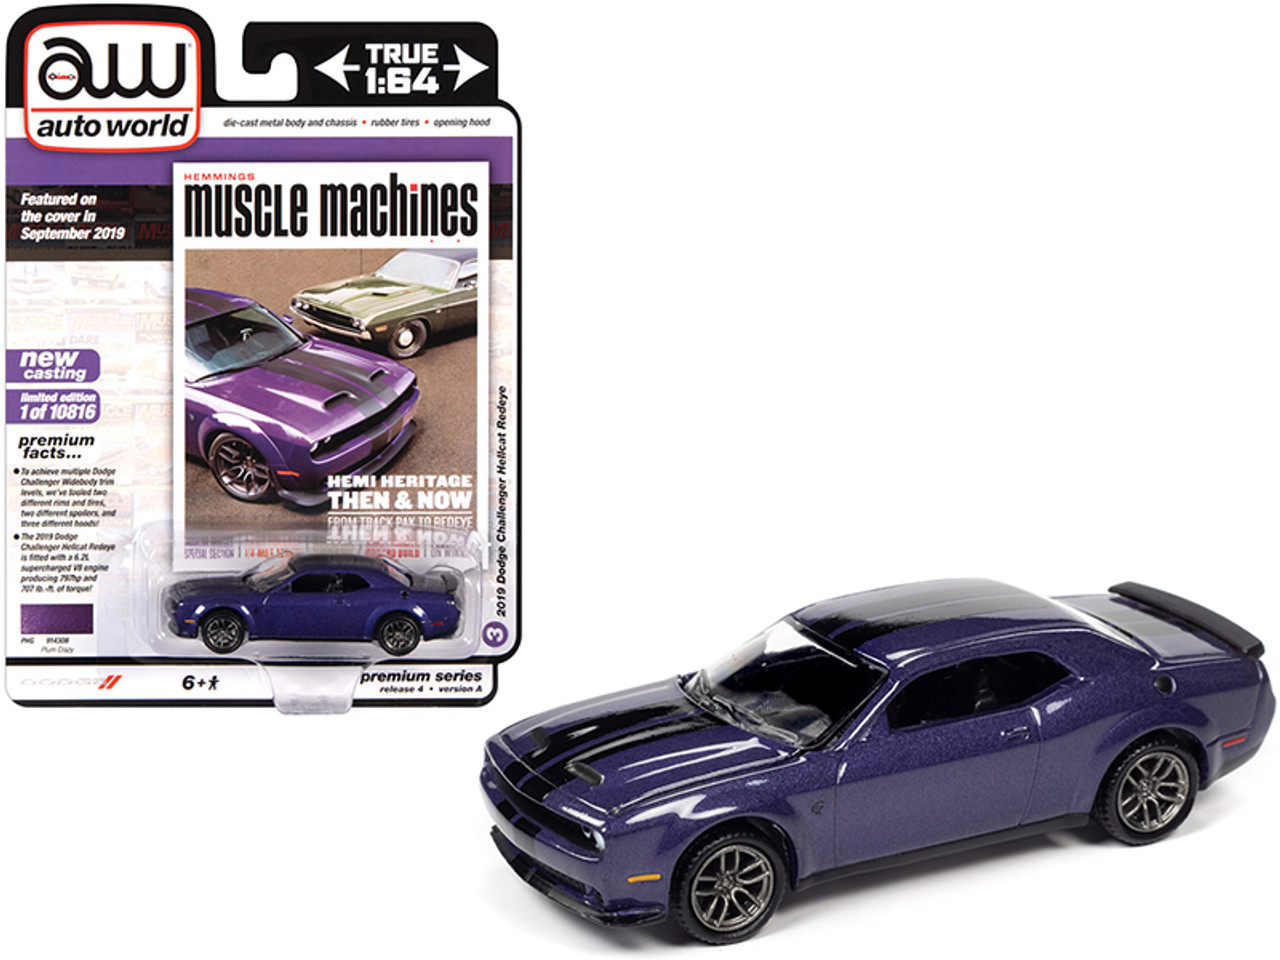 2019 Dodge Challenger Hellcat Redeye Plum Crazy Metallic With Twin Black Stripes Hemmings Muscle Machines Magazine Cover Car September 2019 Limited Edition To 10816 Pieces Worldwide 1 64 Diecast Model Car By Autoworld Livecarmodel Com